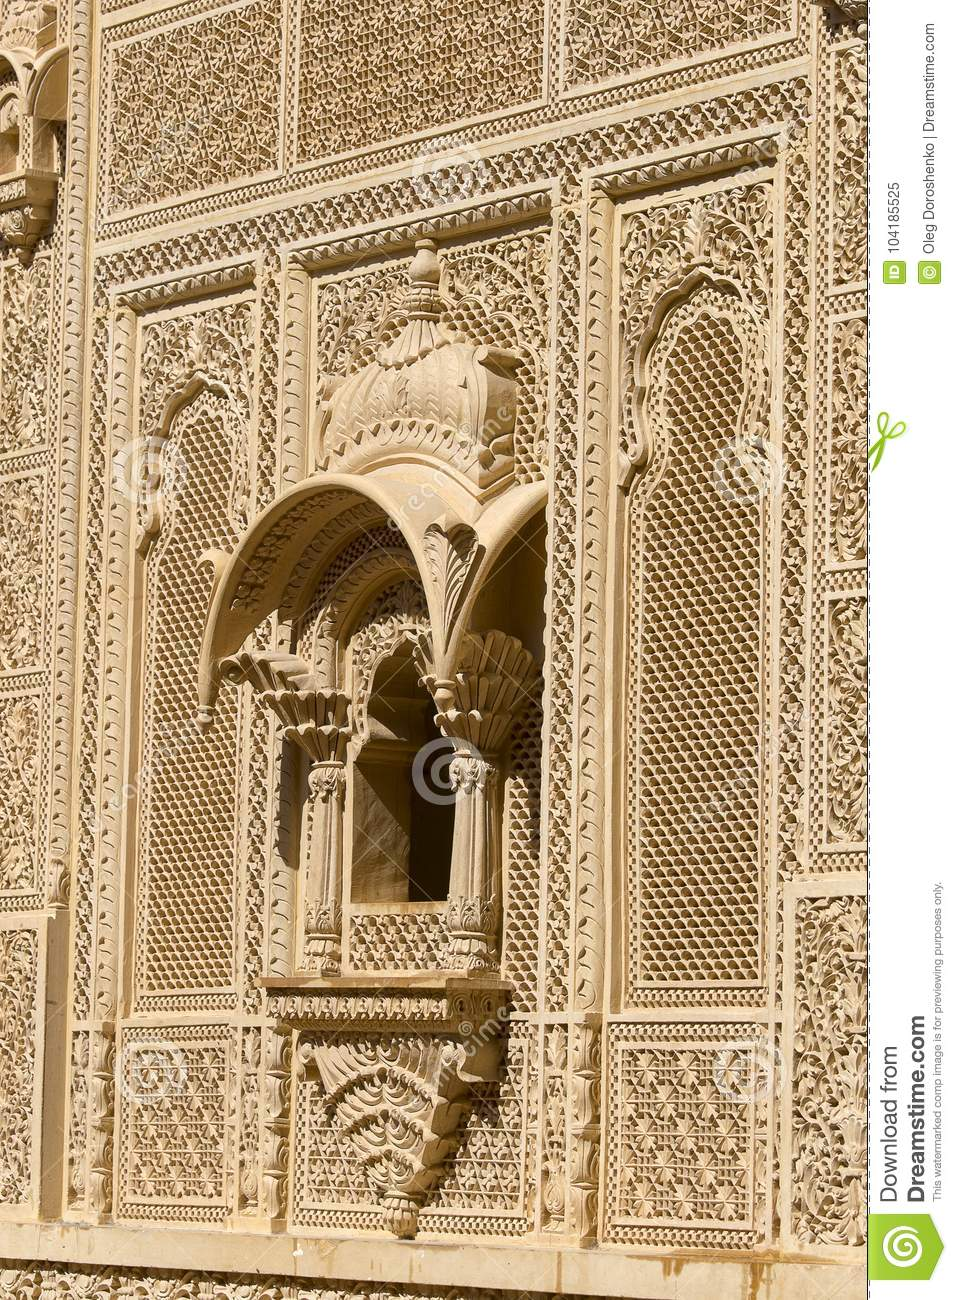 Indian Ornament On Wall Of Palace In Jaisalmer Fort, India. Stock ...